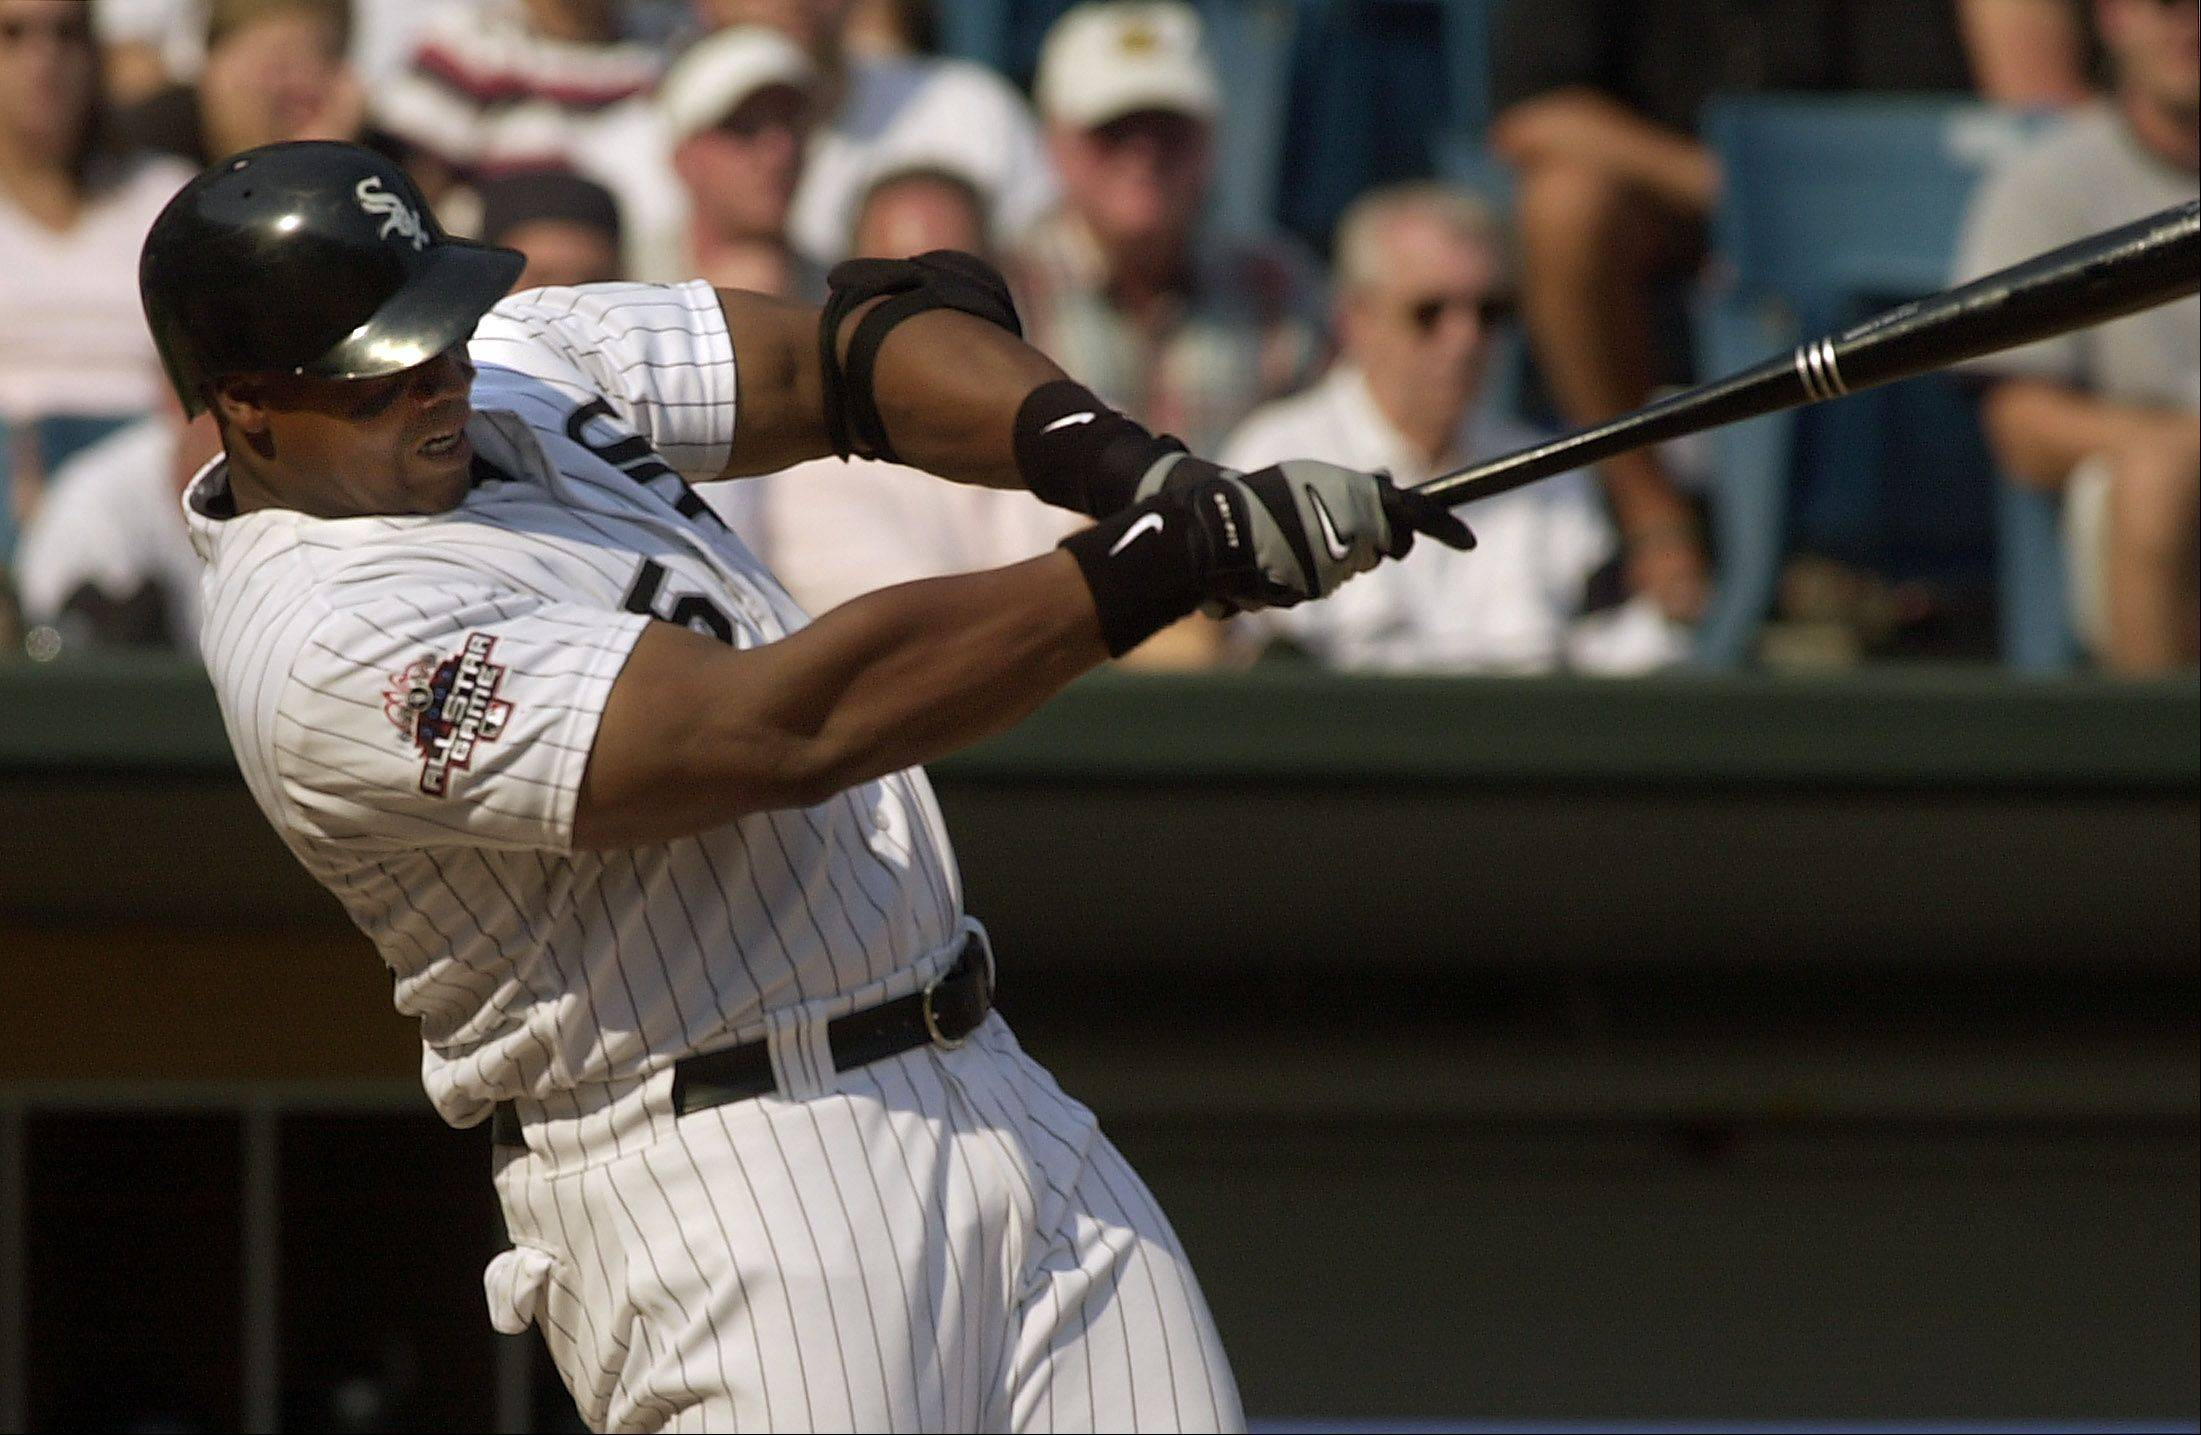 White Sox slugger Frank Thomas was elected to the National Baseball Hall of Fame on Wednesday after receiving 83.7 percent of the vote.